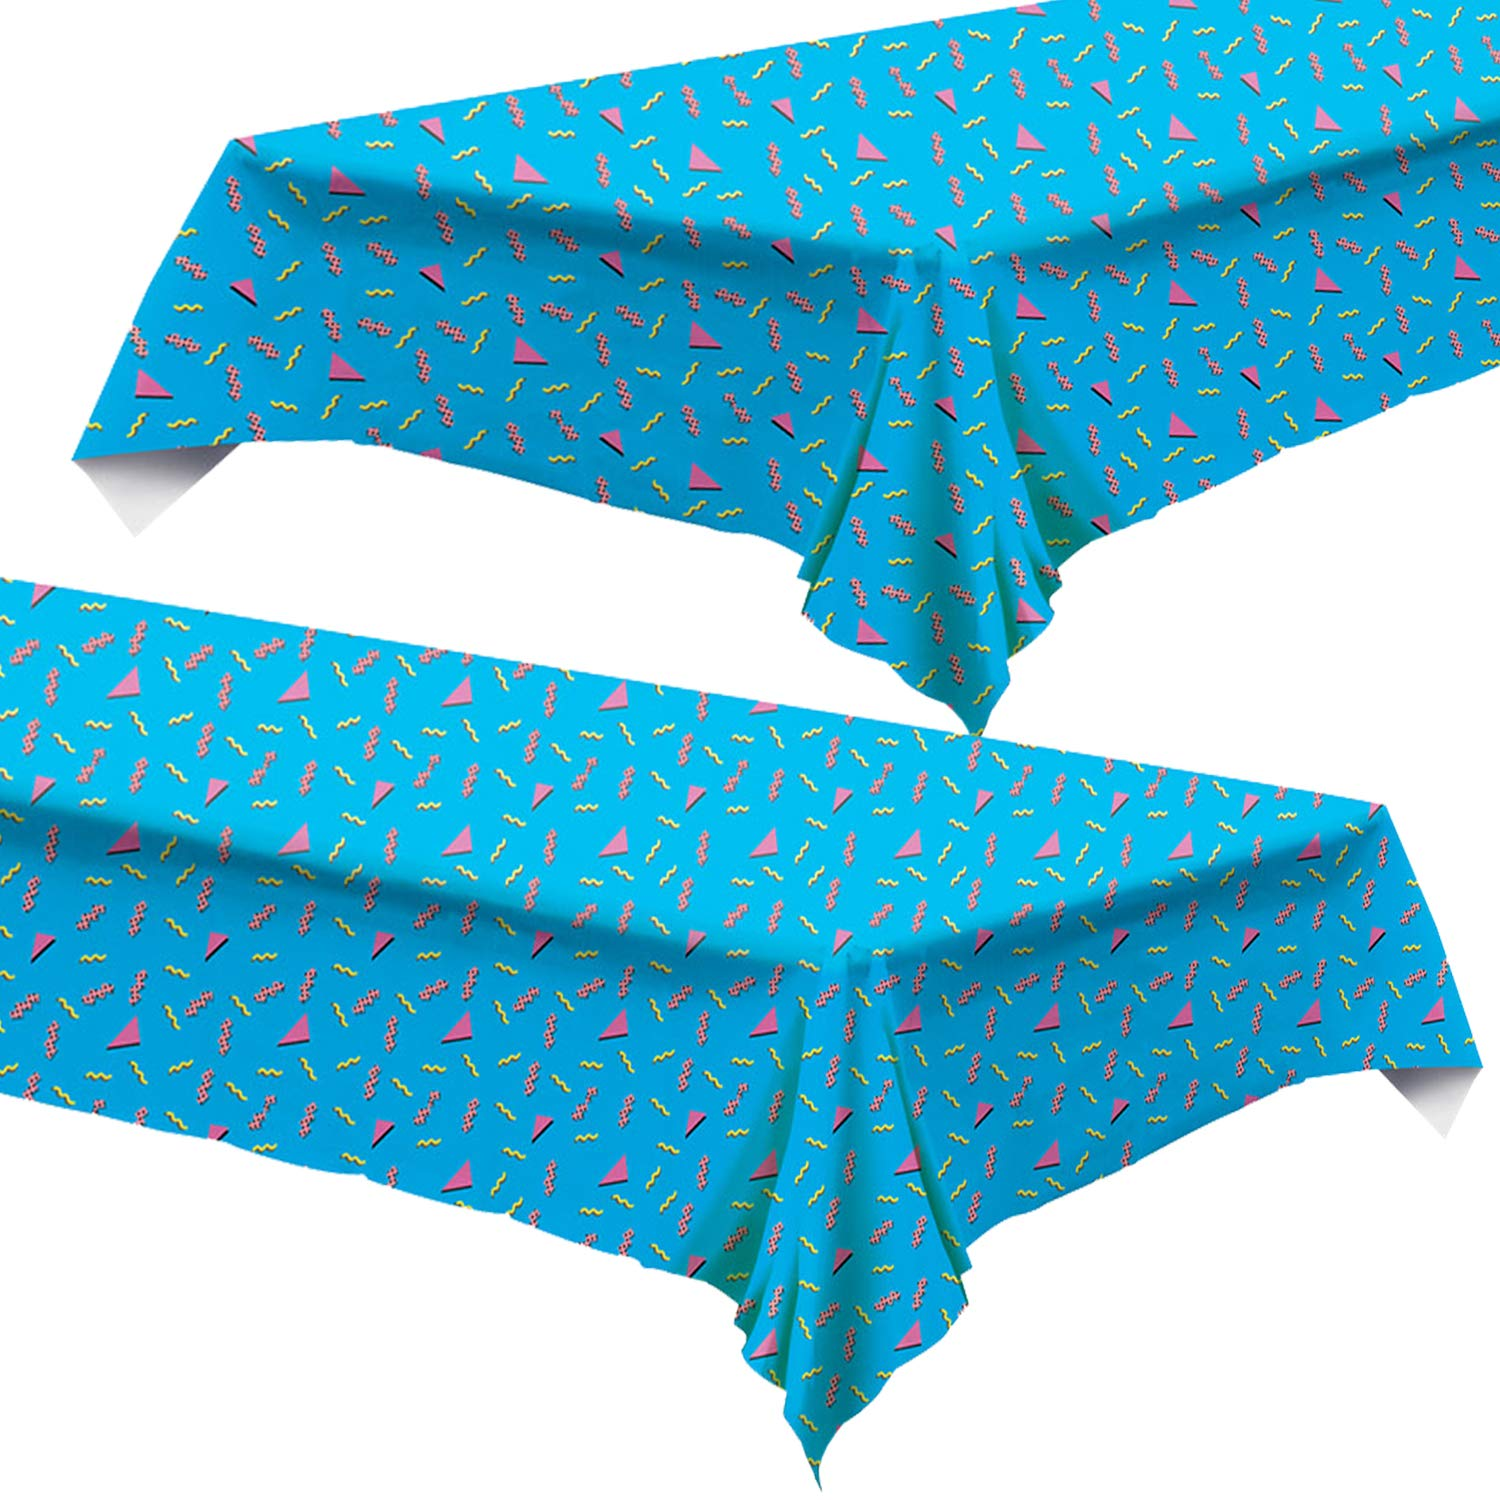 90's Party Supplies - 90's Themed Tablecloth 54'' x 108'' (2 Pack) by Live It Up! Party Supplies